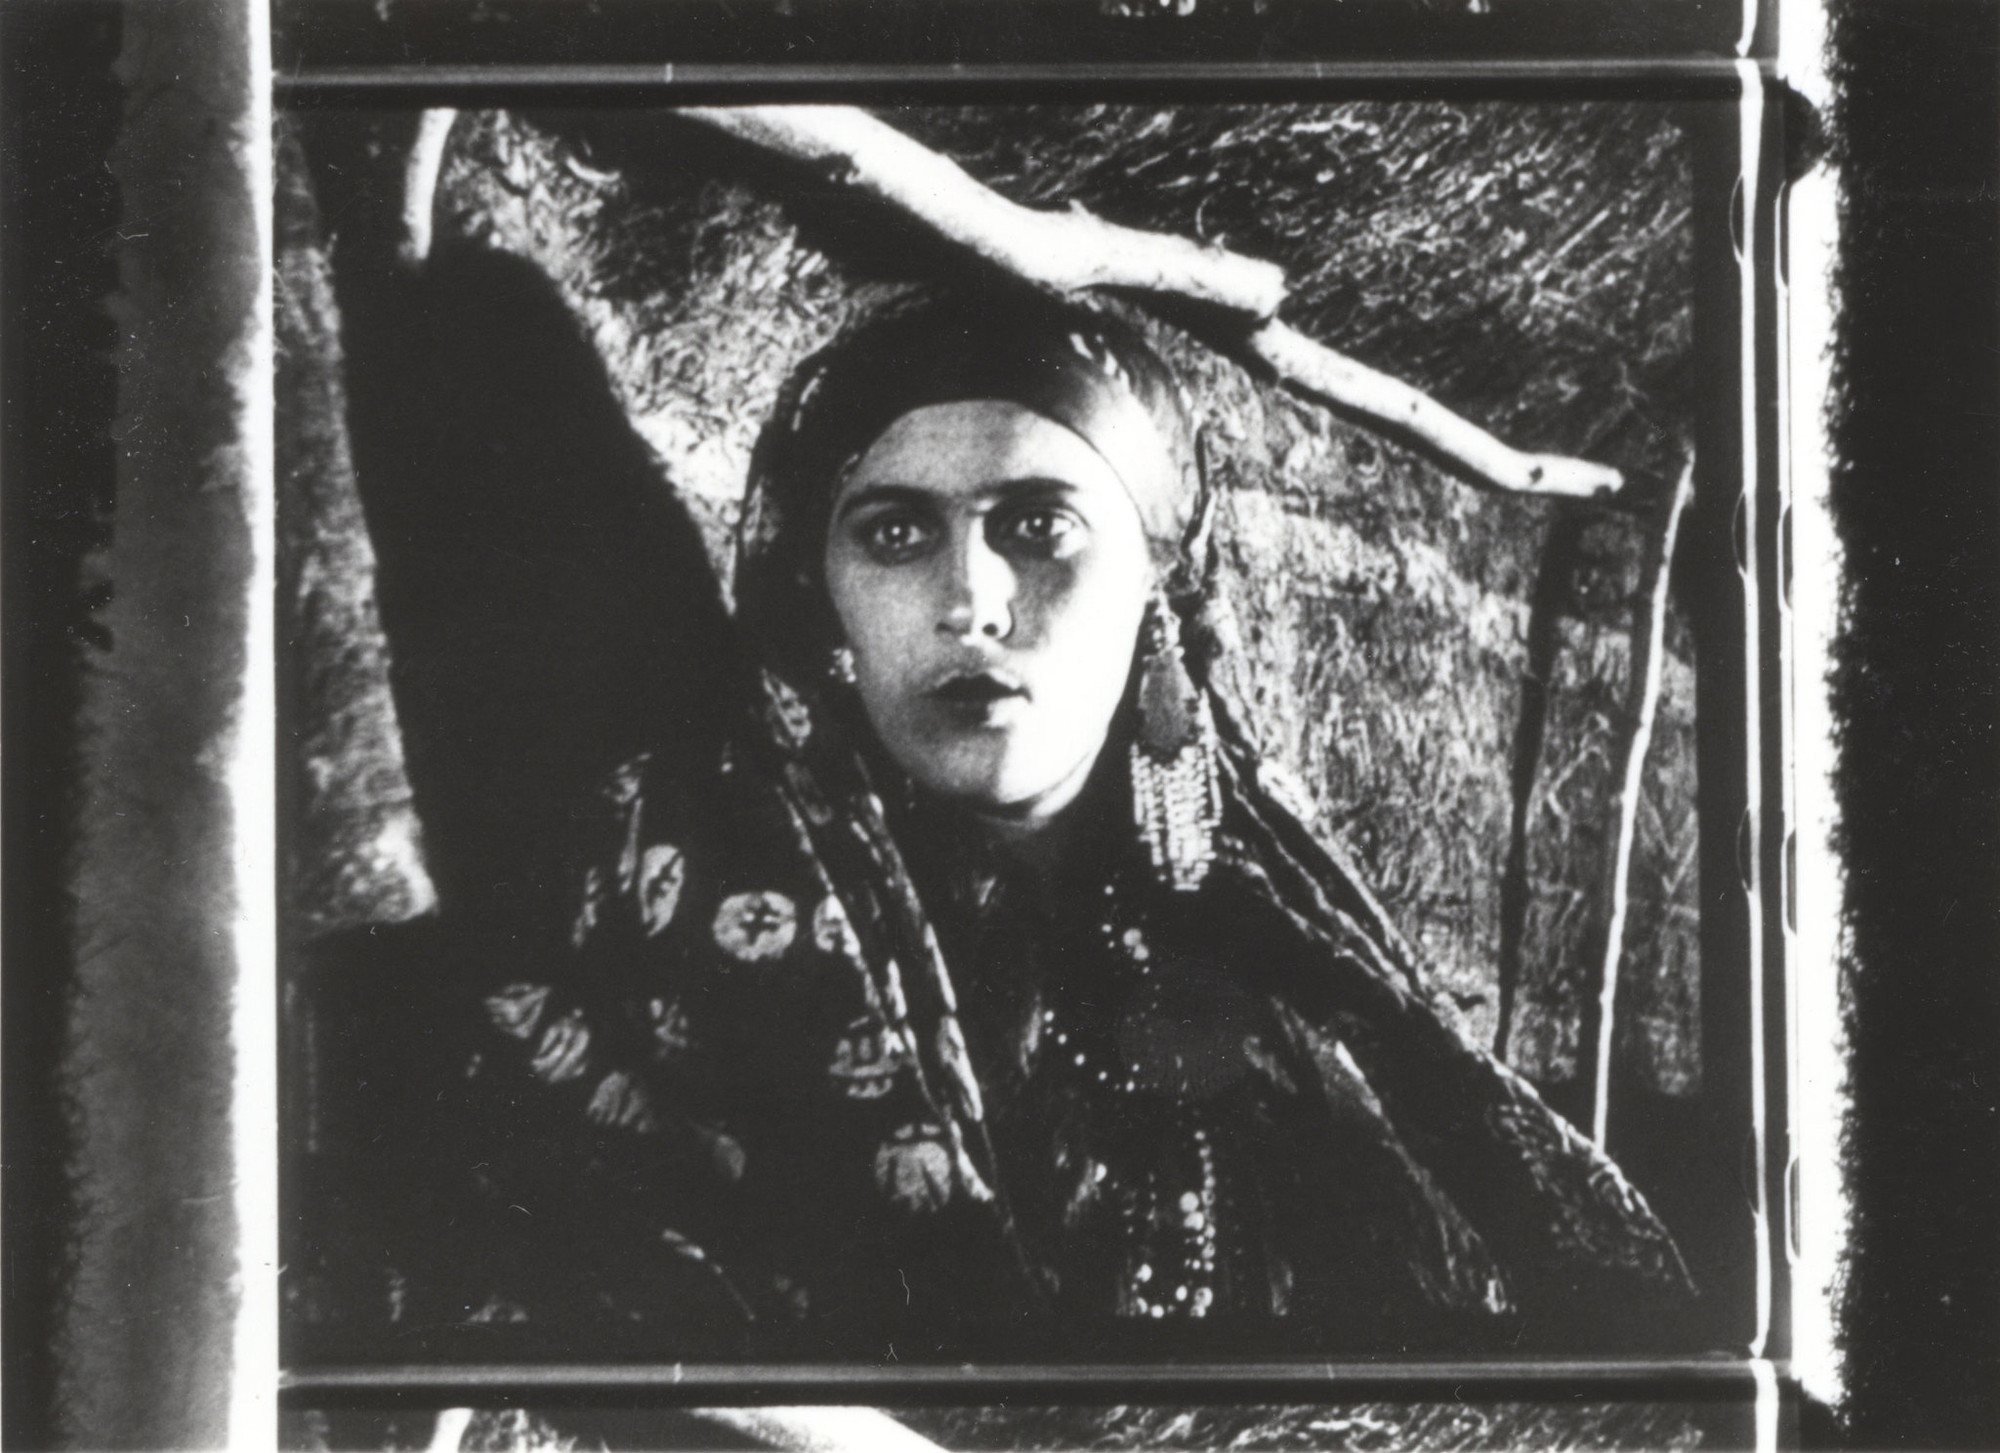 Eliso (Elisso, a.k.a. Caucasian Love). 1928. USSR, Directed by Nikoloz Shengelaia. Image courtesy of UC Berkeley Art Museum and Pacific Film Archive